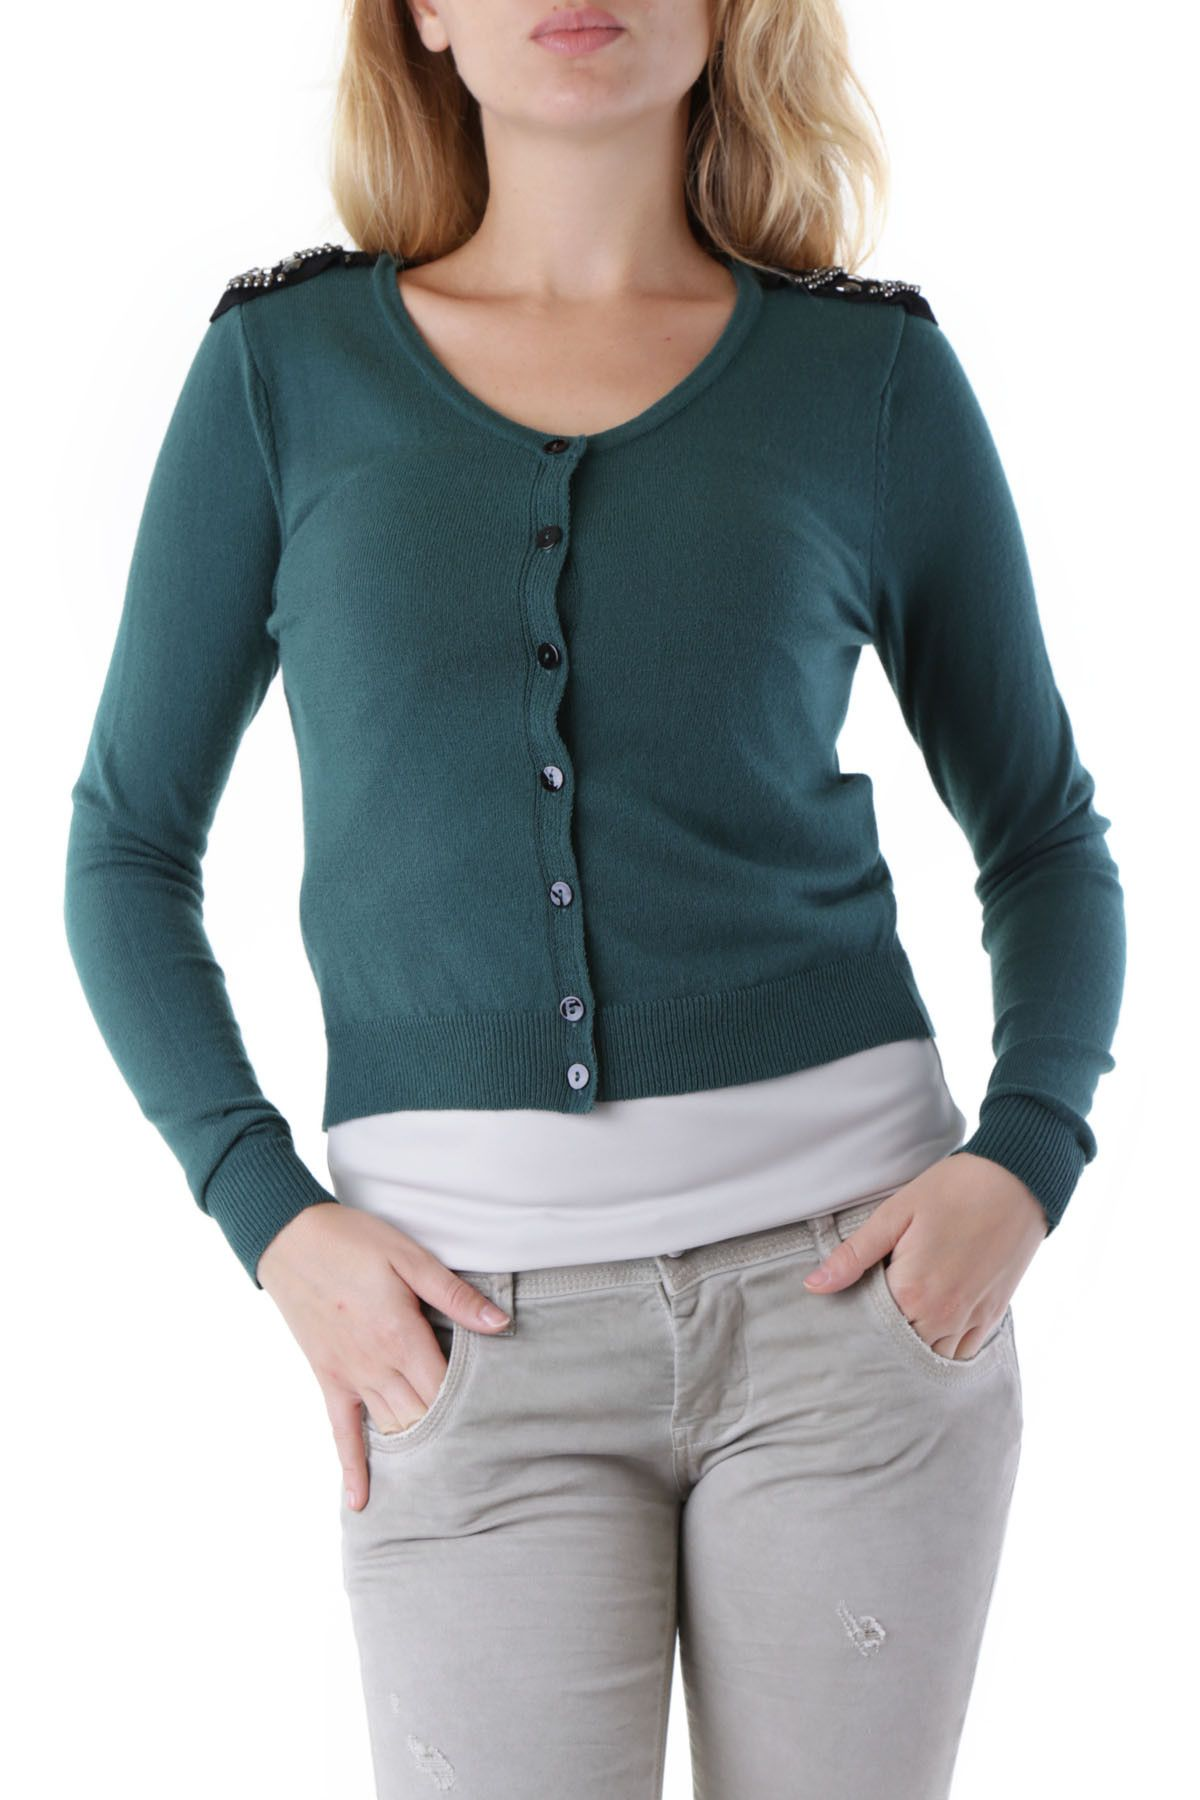 Olivia Hops Women's Cardigan In Green